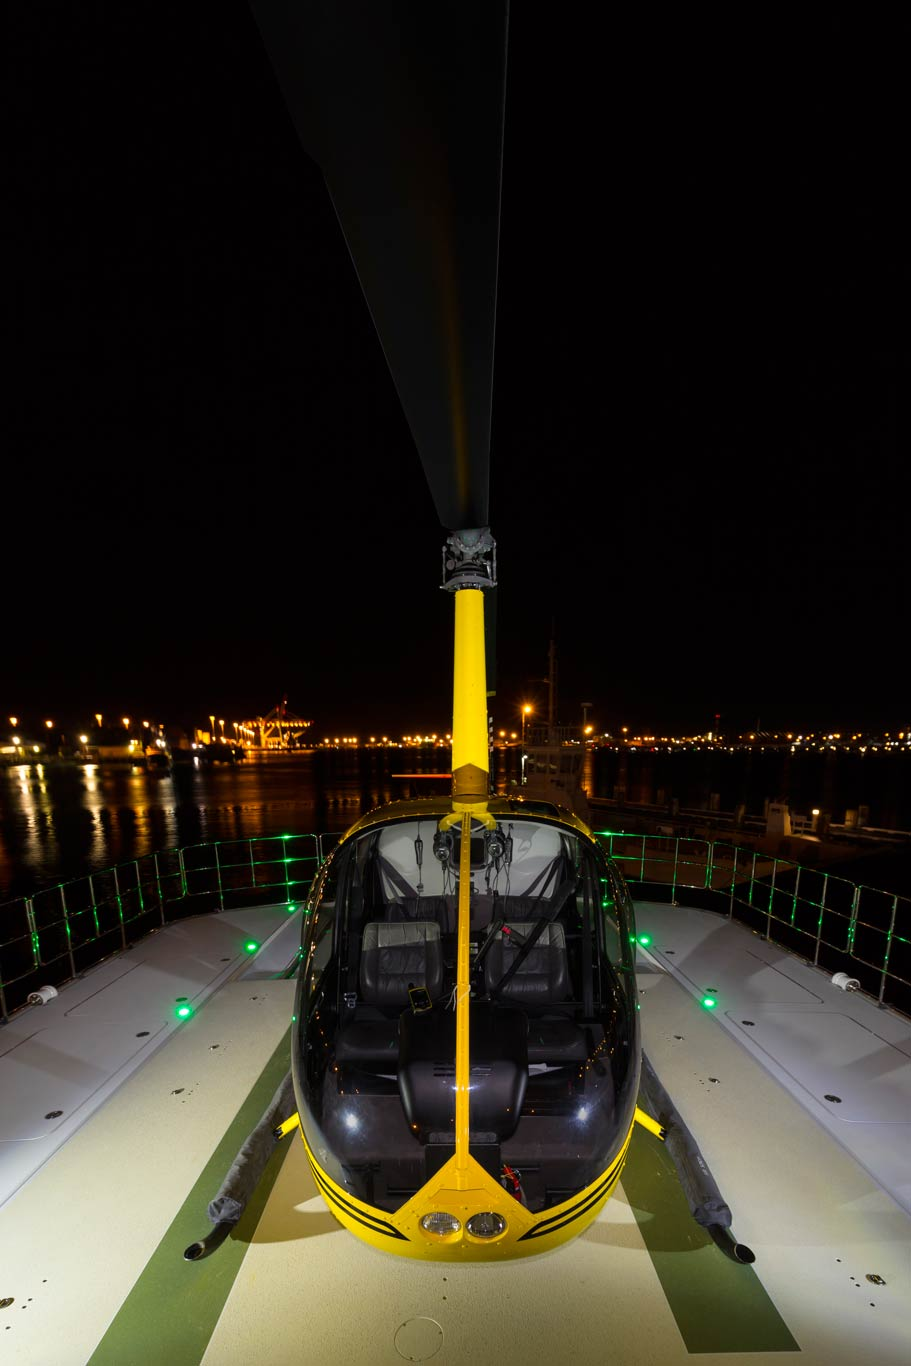 Landing lights ensure safe flying from dawn to dusk, even night flights are possible